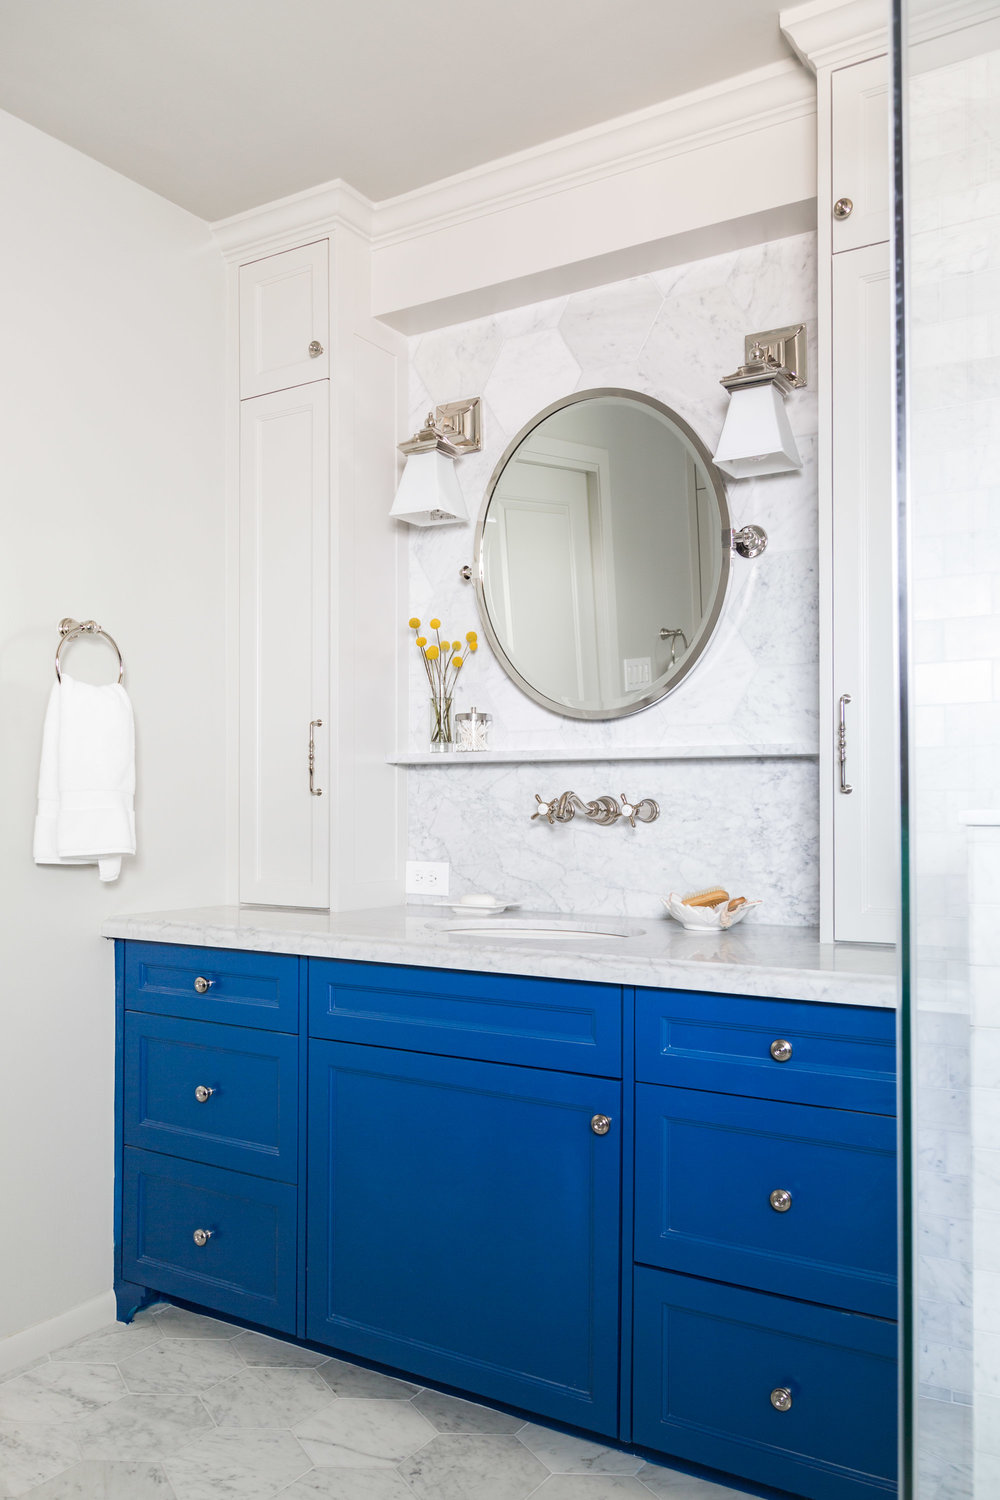 Pivot mirror and wall mount faucet at vanity with hex marble tile | Carla Aston, Designer | Tori Aston, Photographer  #bathroomremodel #marblebathroom #hextile #bluecabinets